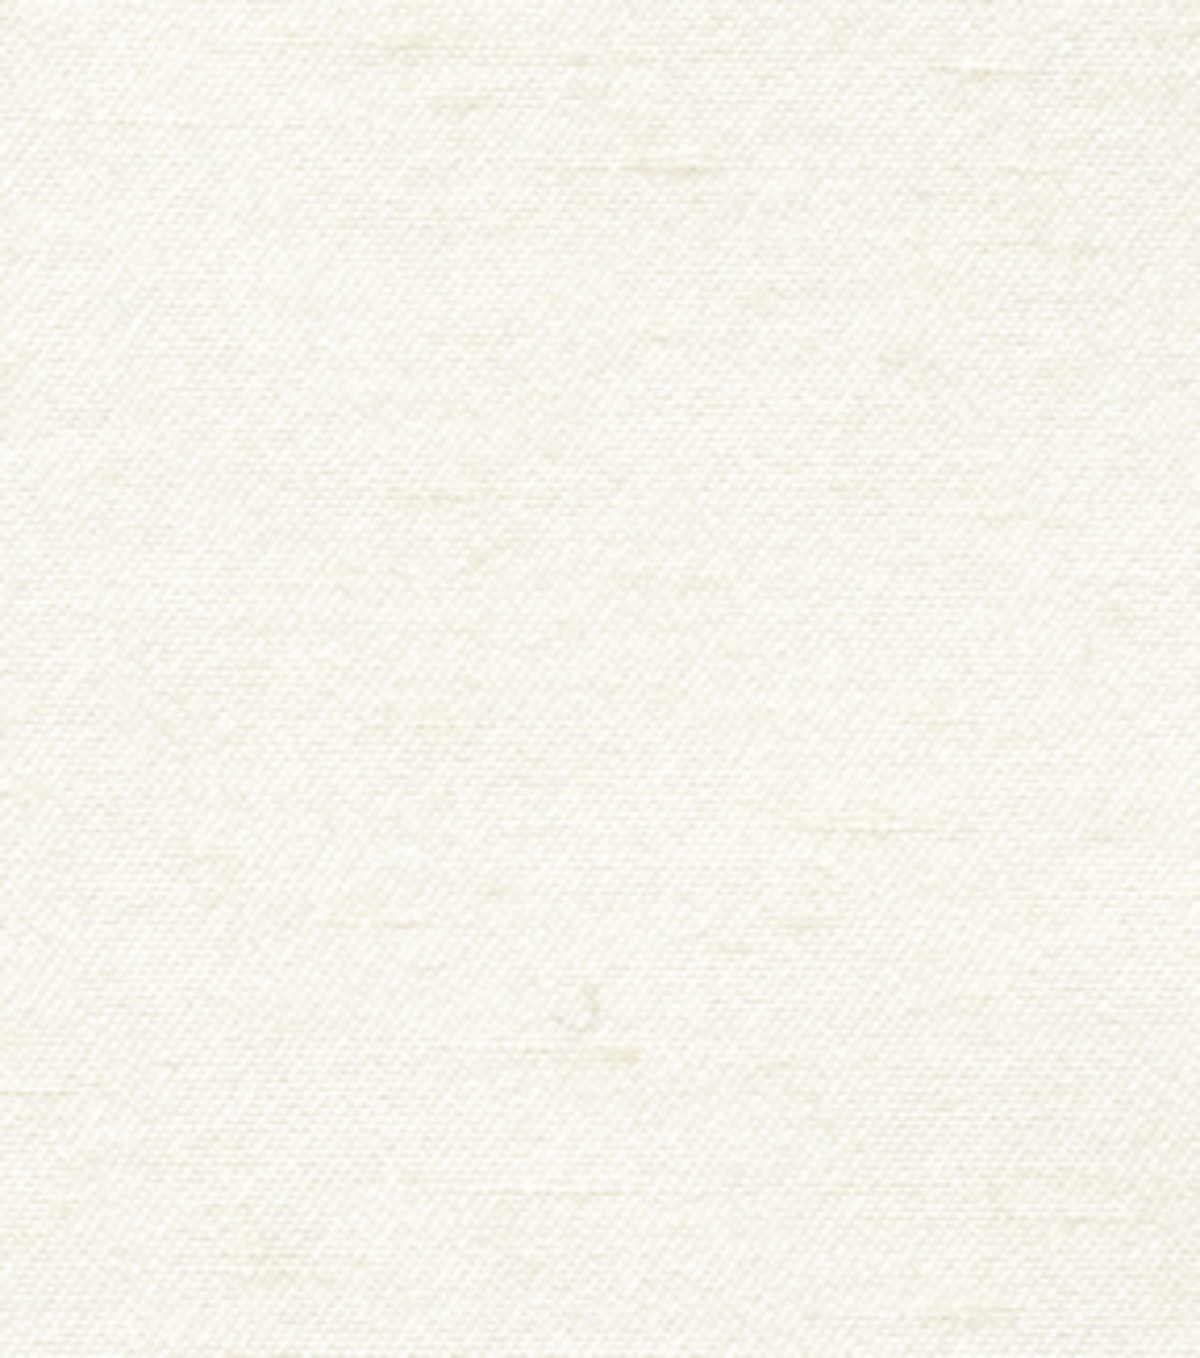 Home Decor 8\u0022x8\u0022 Fabric Swatch-Signature Series Antique Satin Diamond